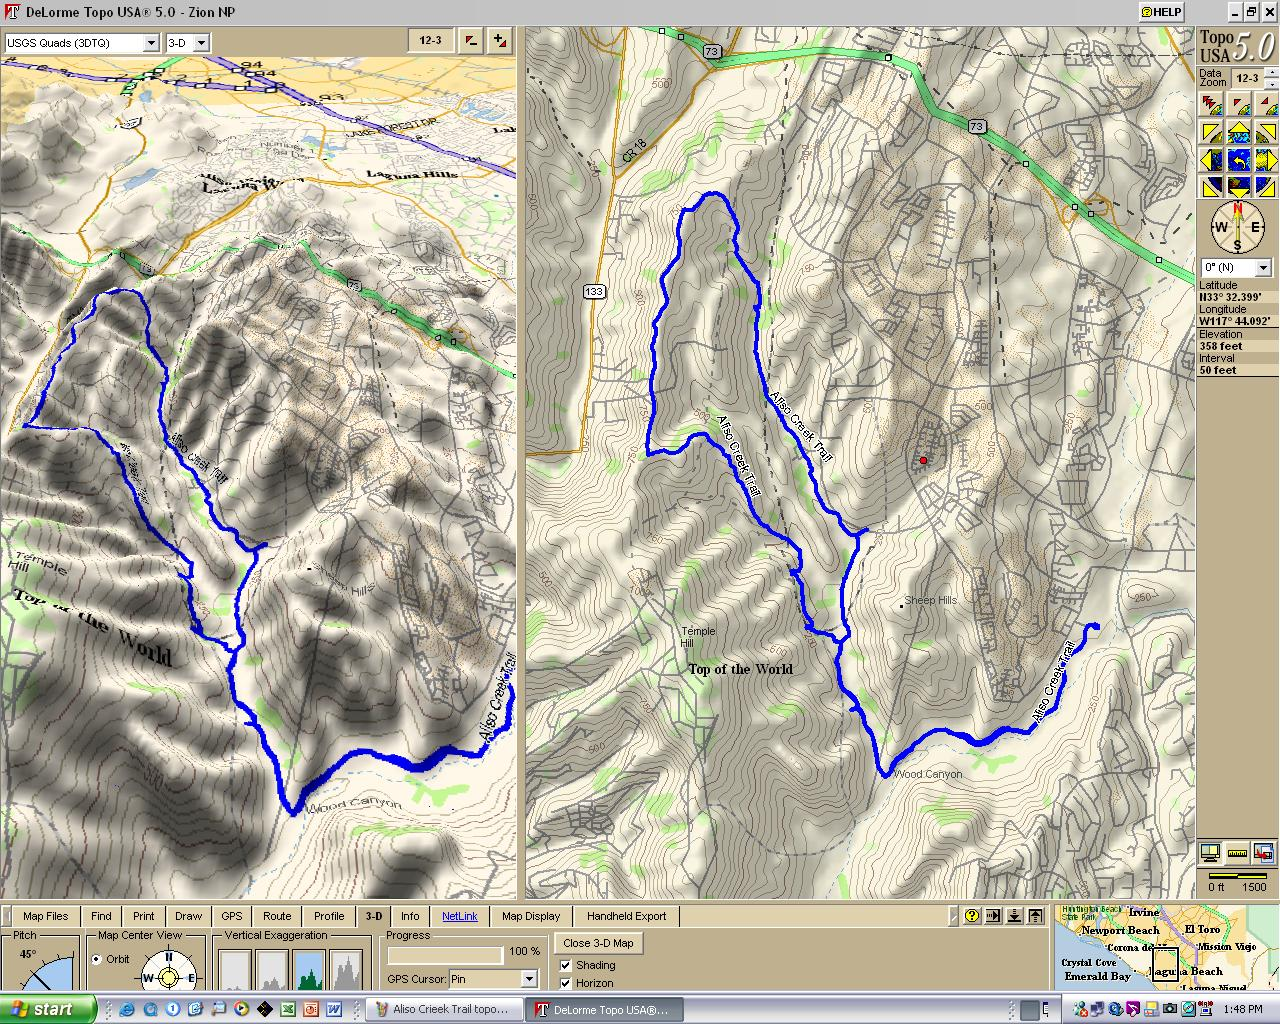 Current Image is BFelsted/Aliso_Crieek_Trail_topo_3D.JPG Clicking here will display Aliso_Crieek_Trail_topo.JPG